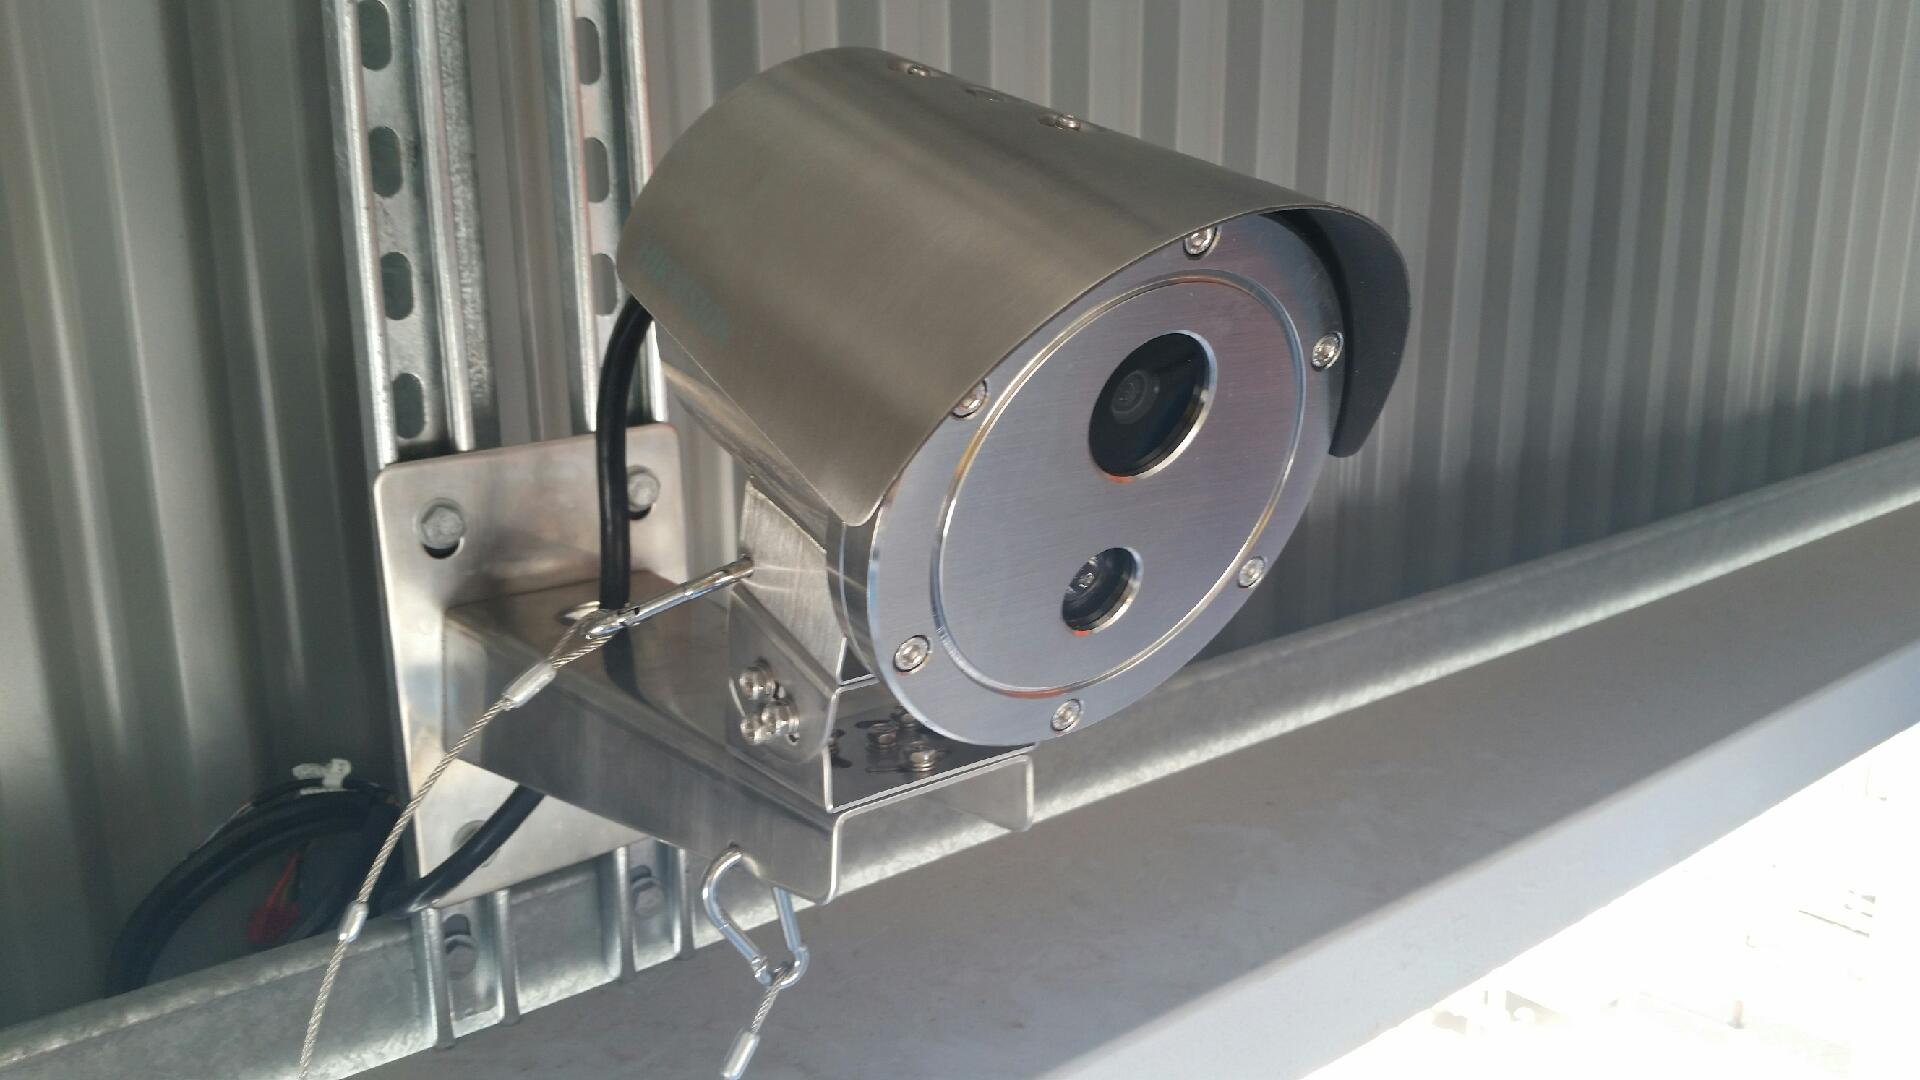 Explosion Proof Camera installed into the Gantry